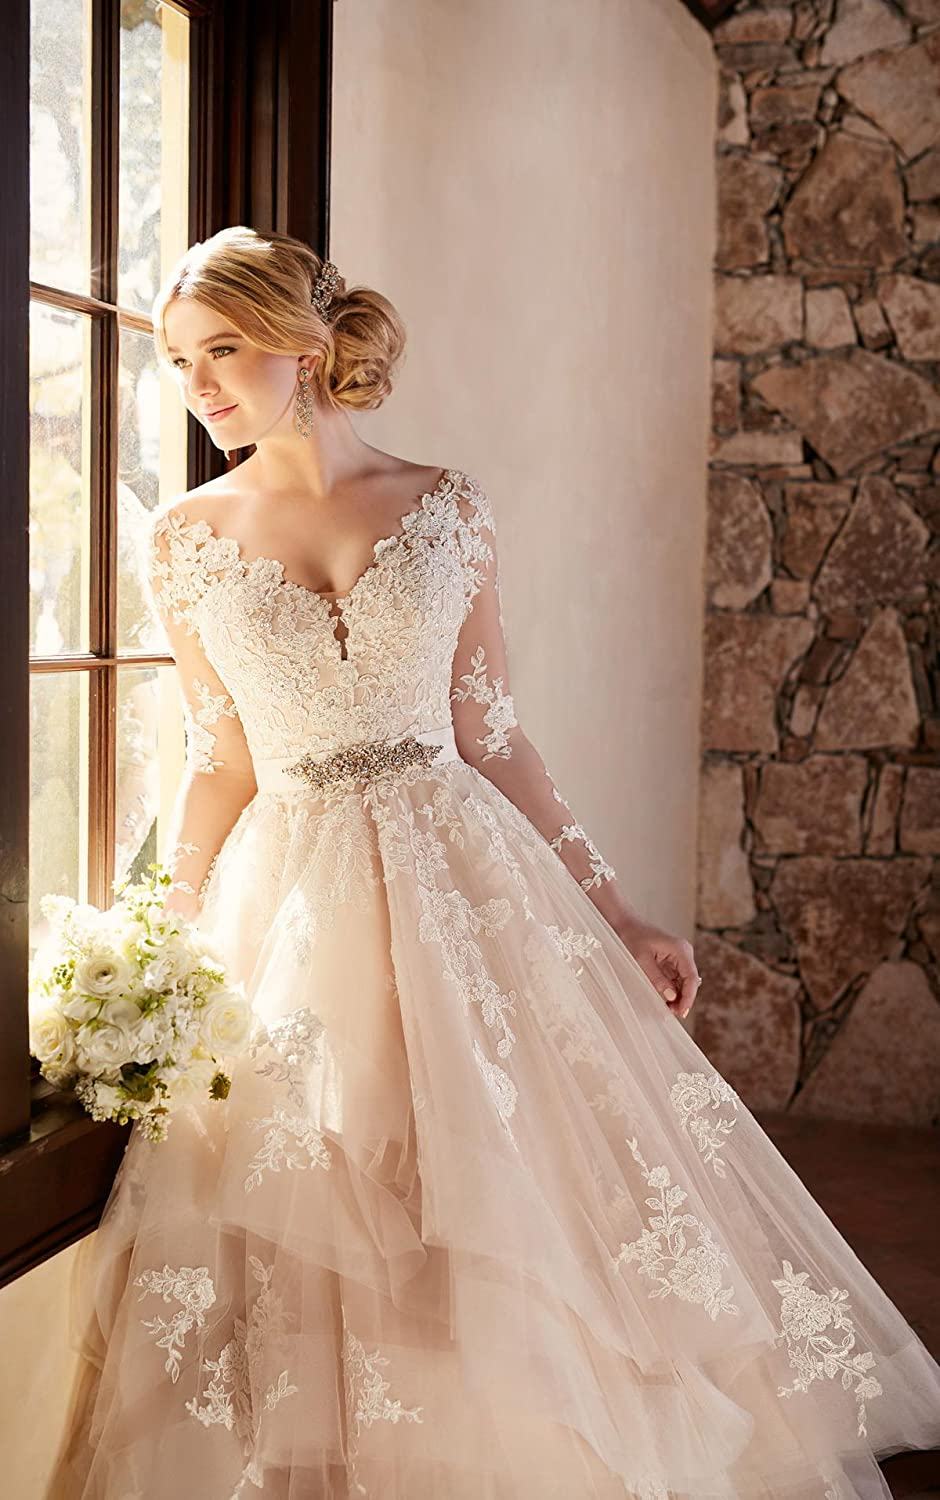 1ad3230ad058 Doramei Women s Ball Gown Long Sleeve Lace Appliques Backless Wedding Dress  2018 at Amazon Women s Clothing store